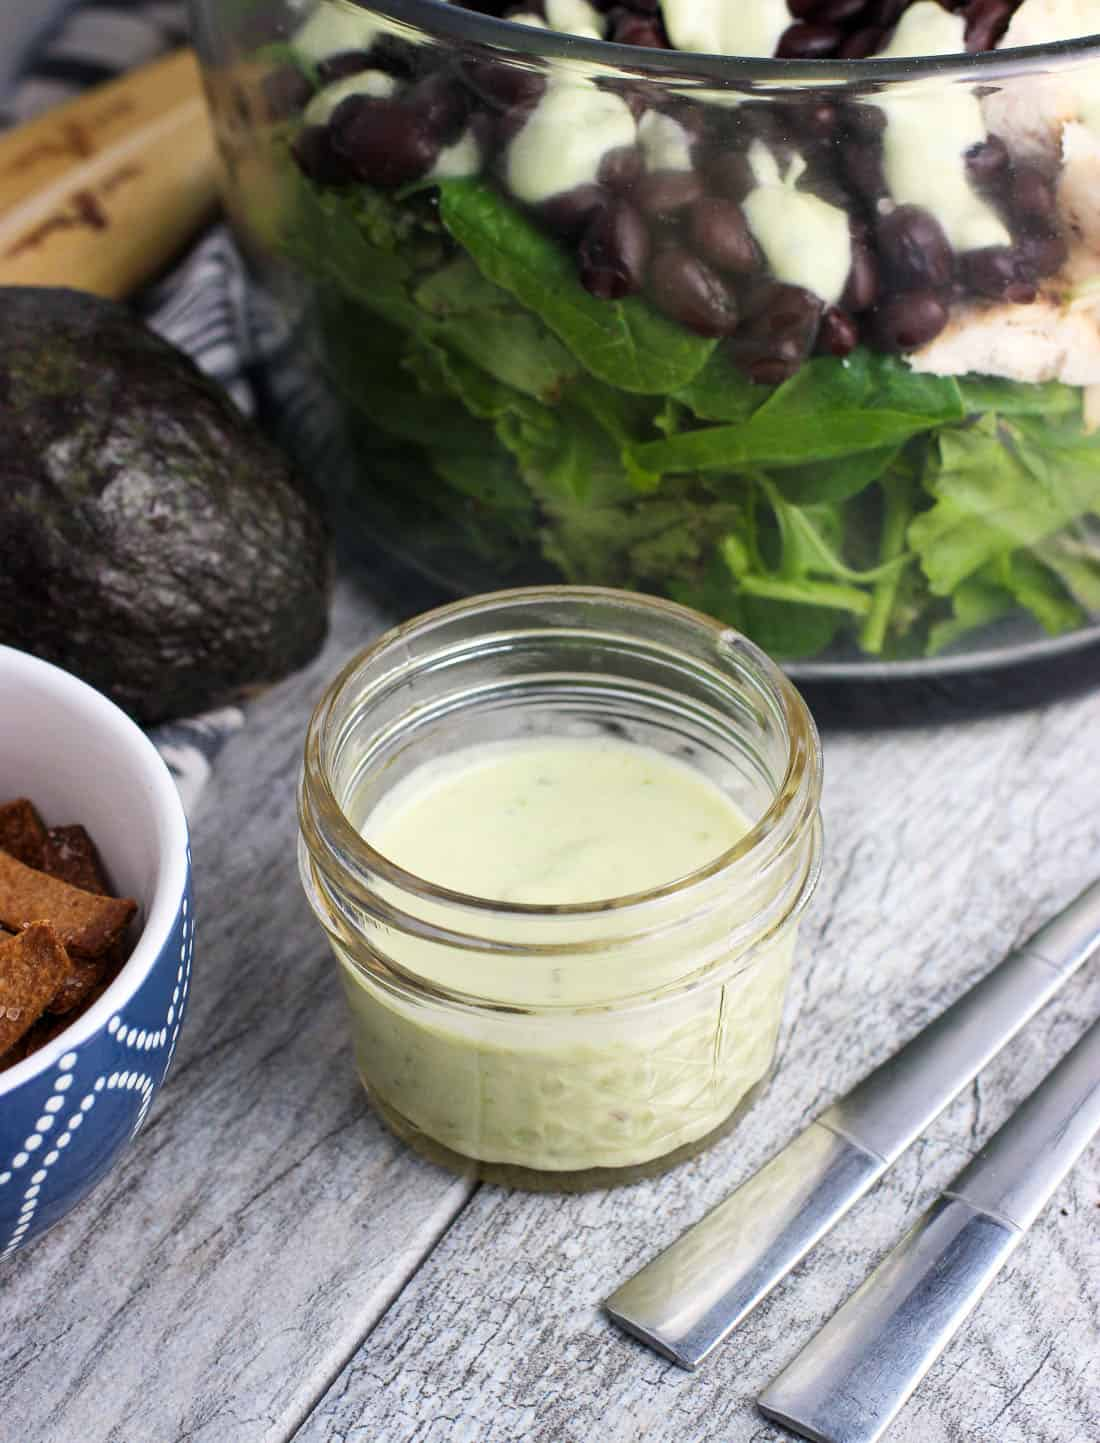 This creamy avocado apple cider vinegar salad dressing that is creamy and tangy all at once.